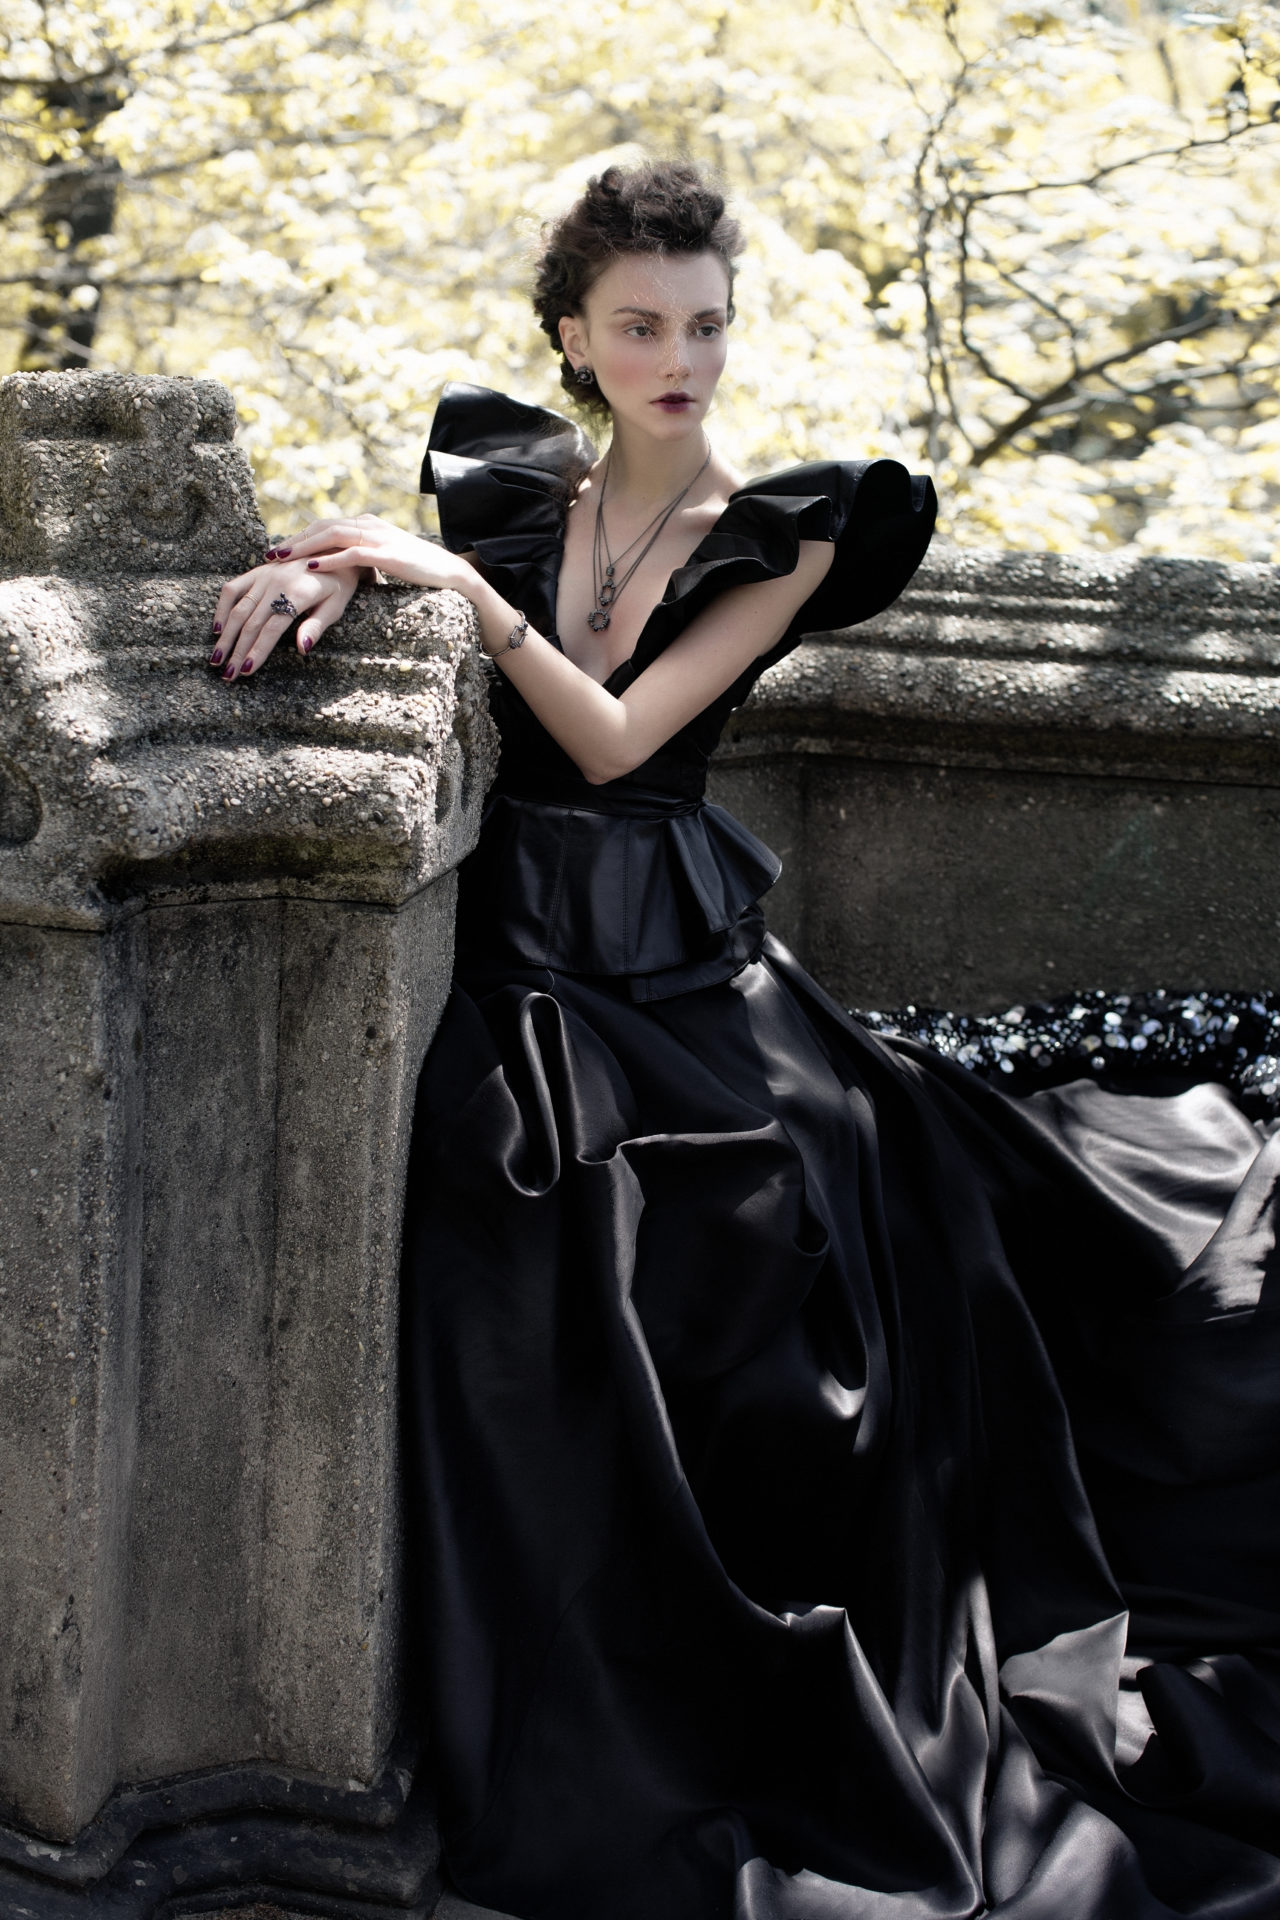 ) Top&leather skirt - Leka. Dress with sequins- Basix. Neckless, earrings, rings, bracelet - Solomeina